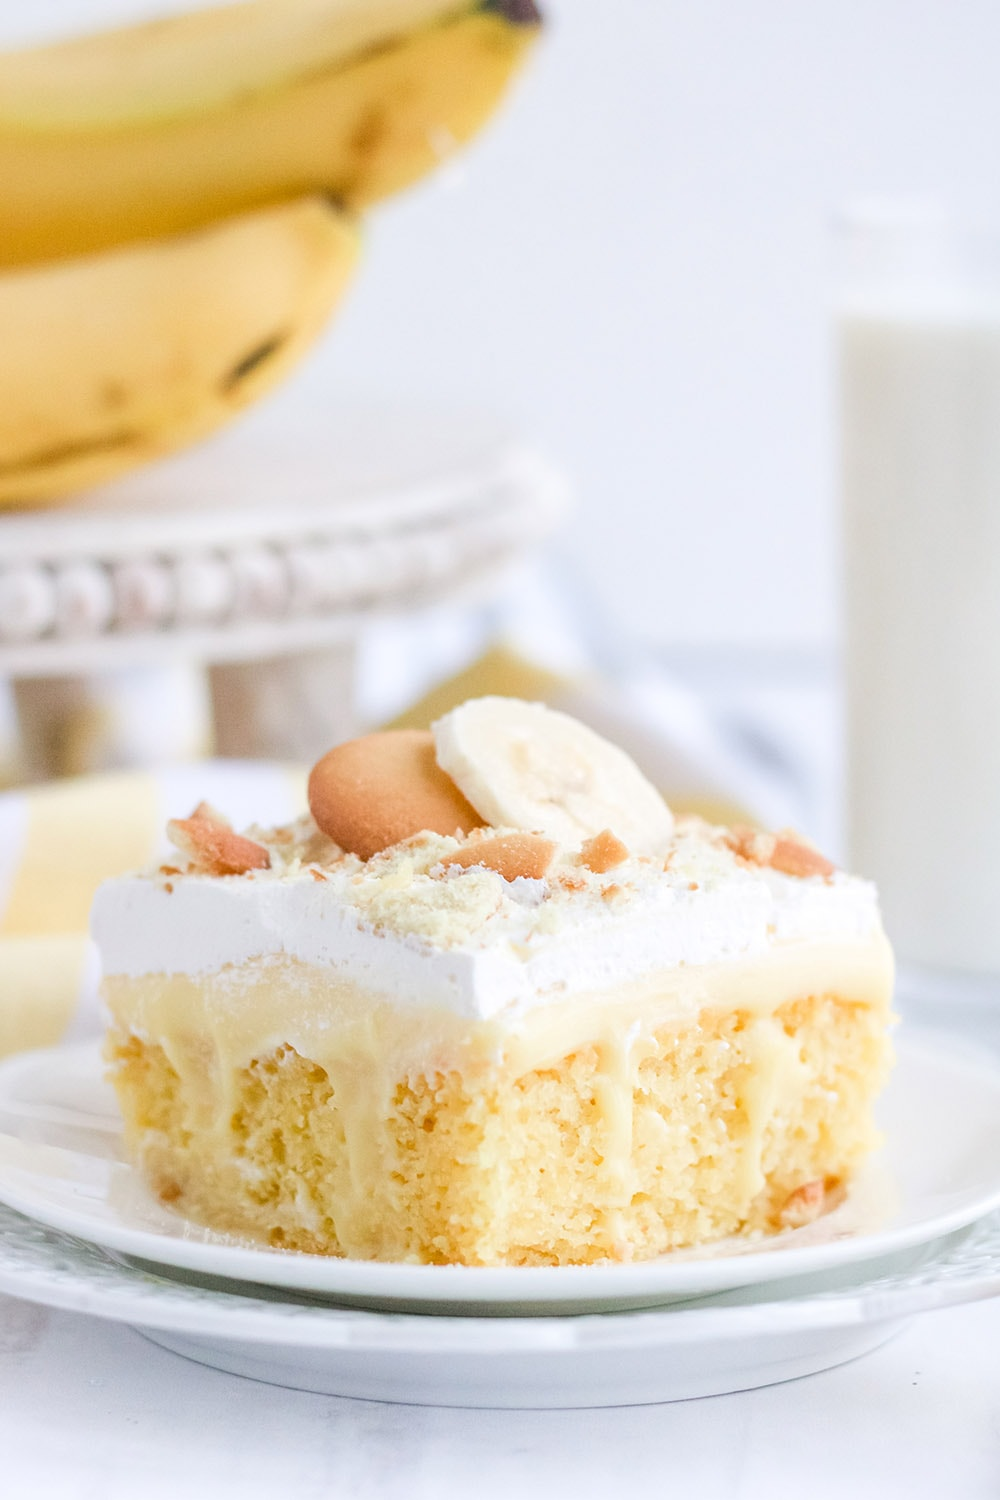 Yellow cake on a white plate with bananas and cookies.